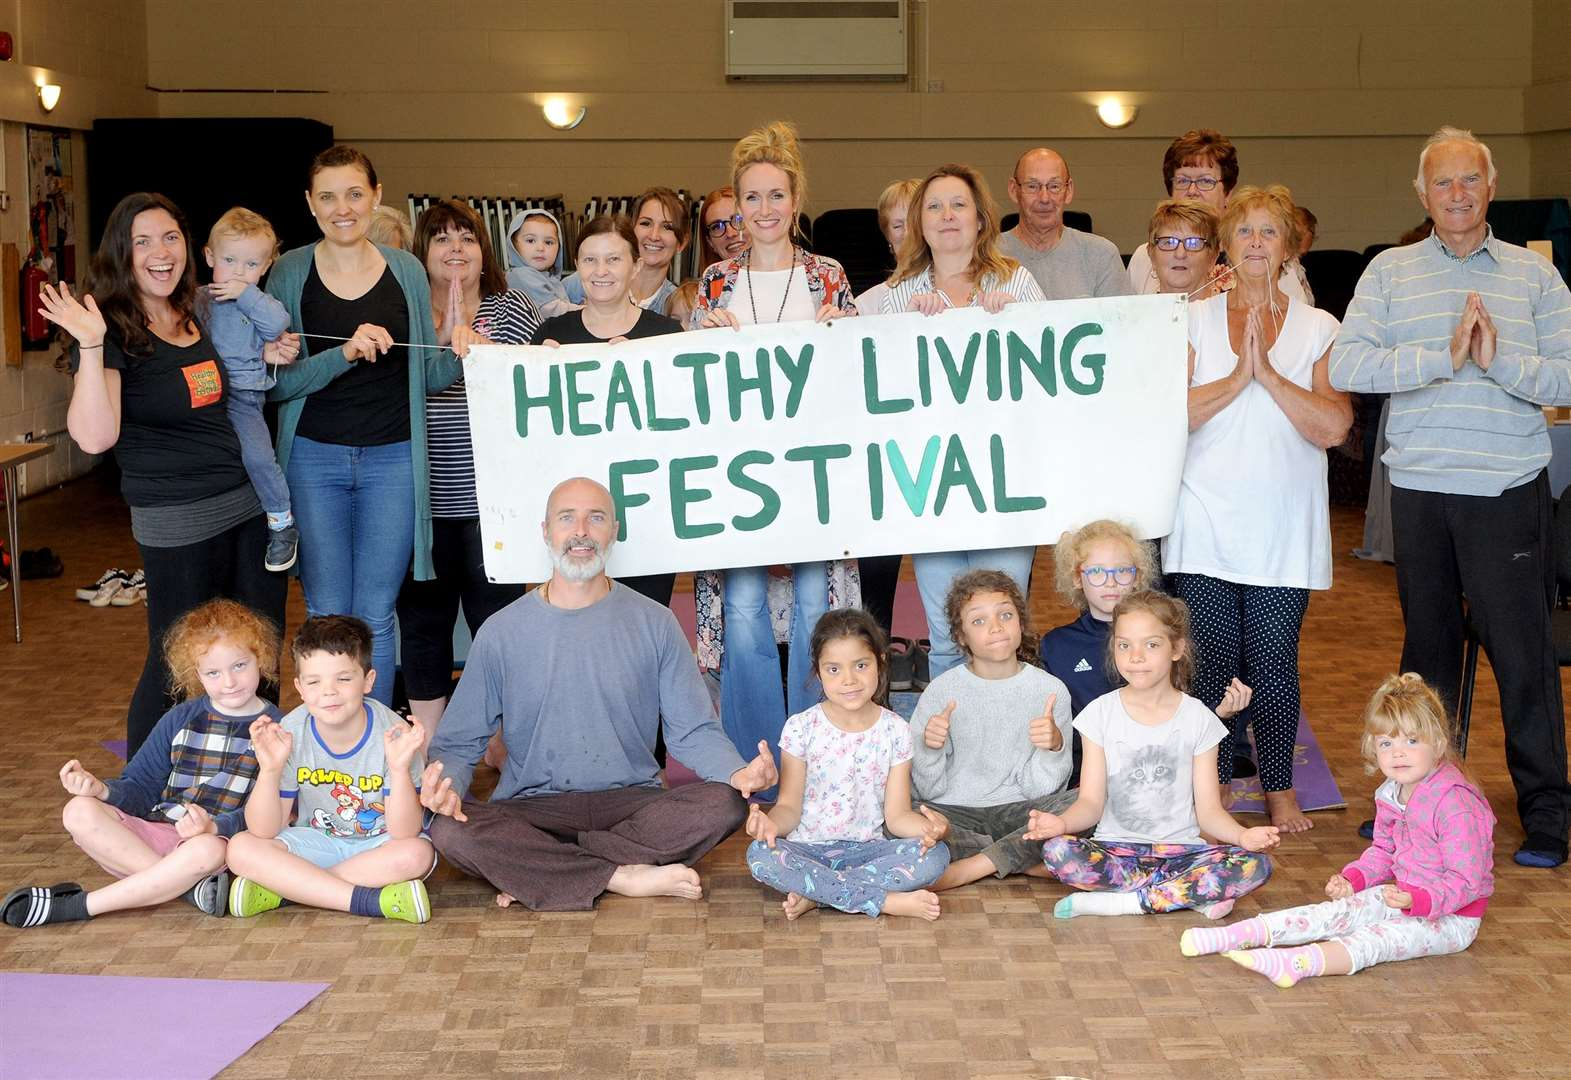 Healthy Living Festival in Kedington is just the start of wellbeing project